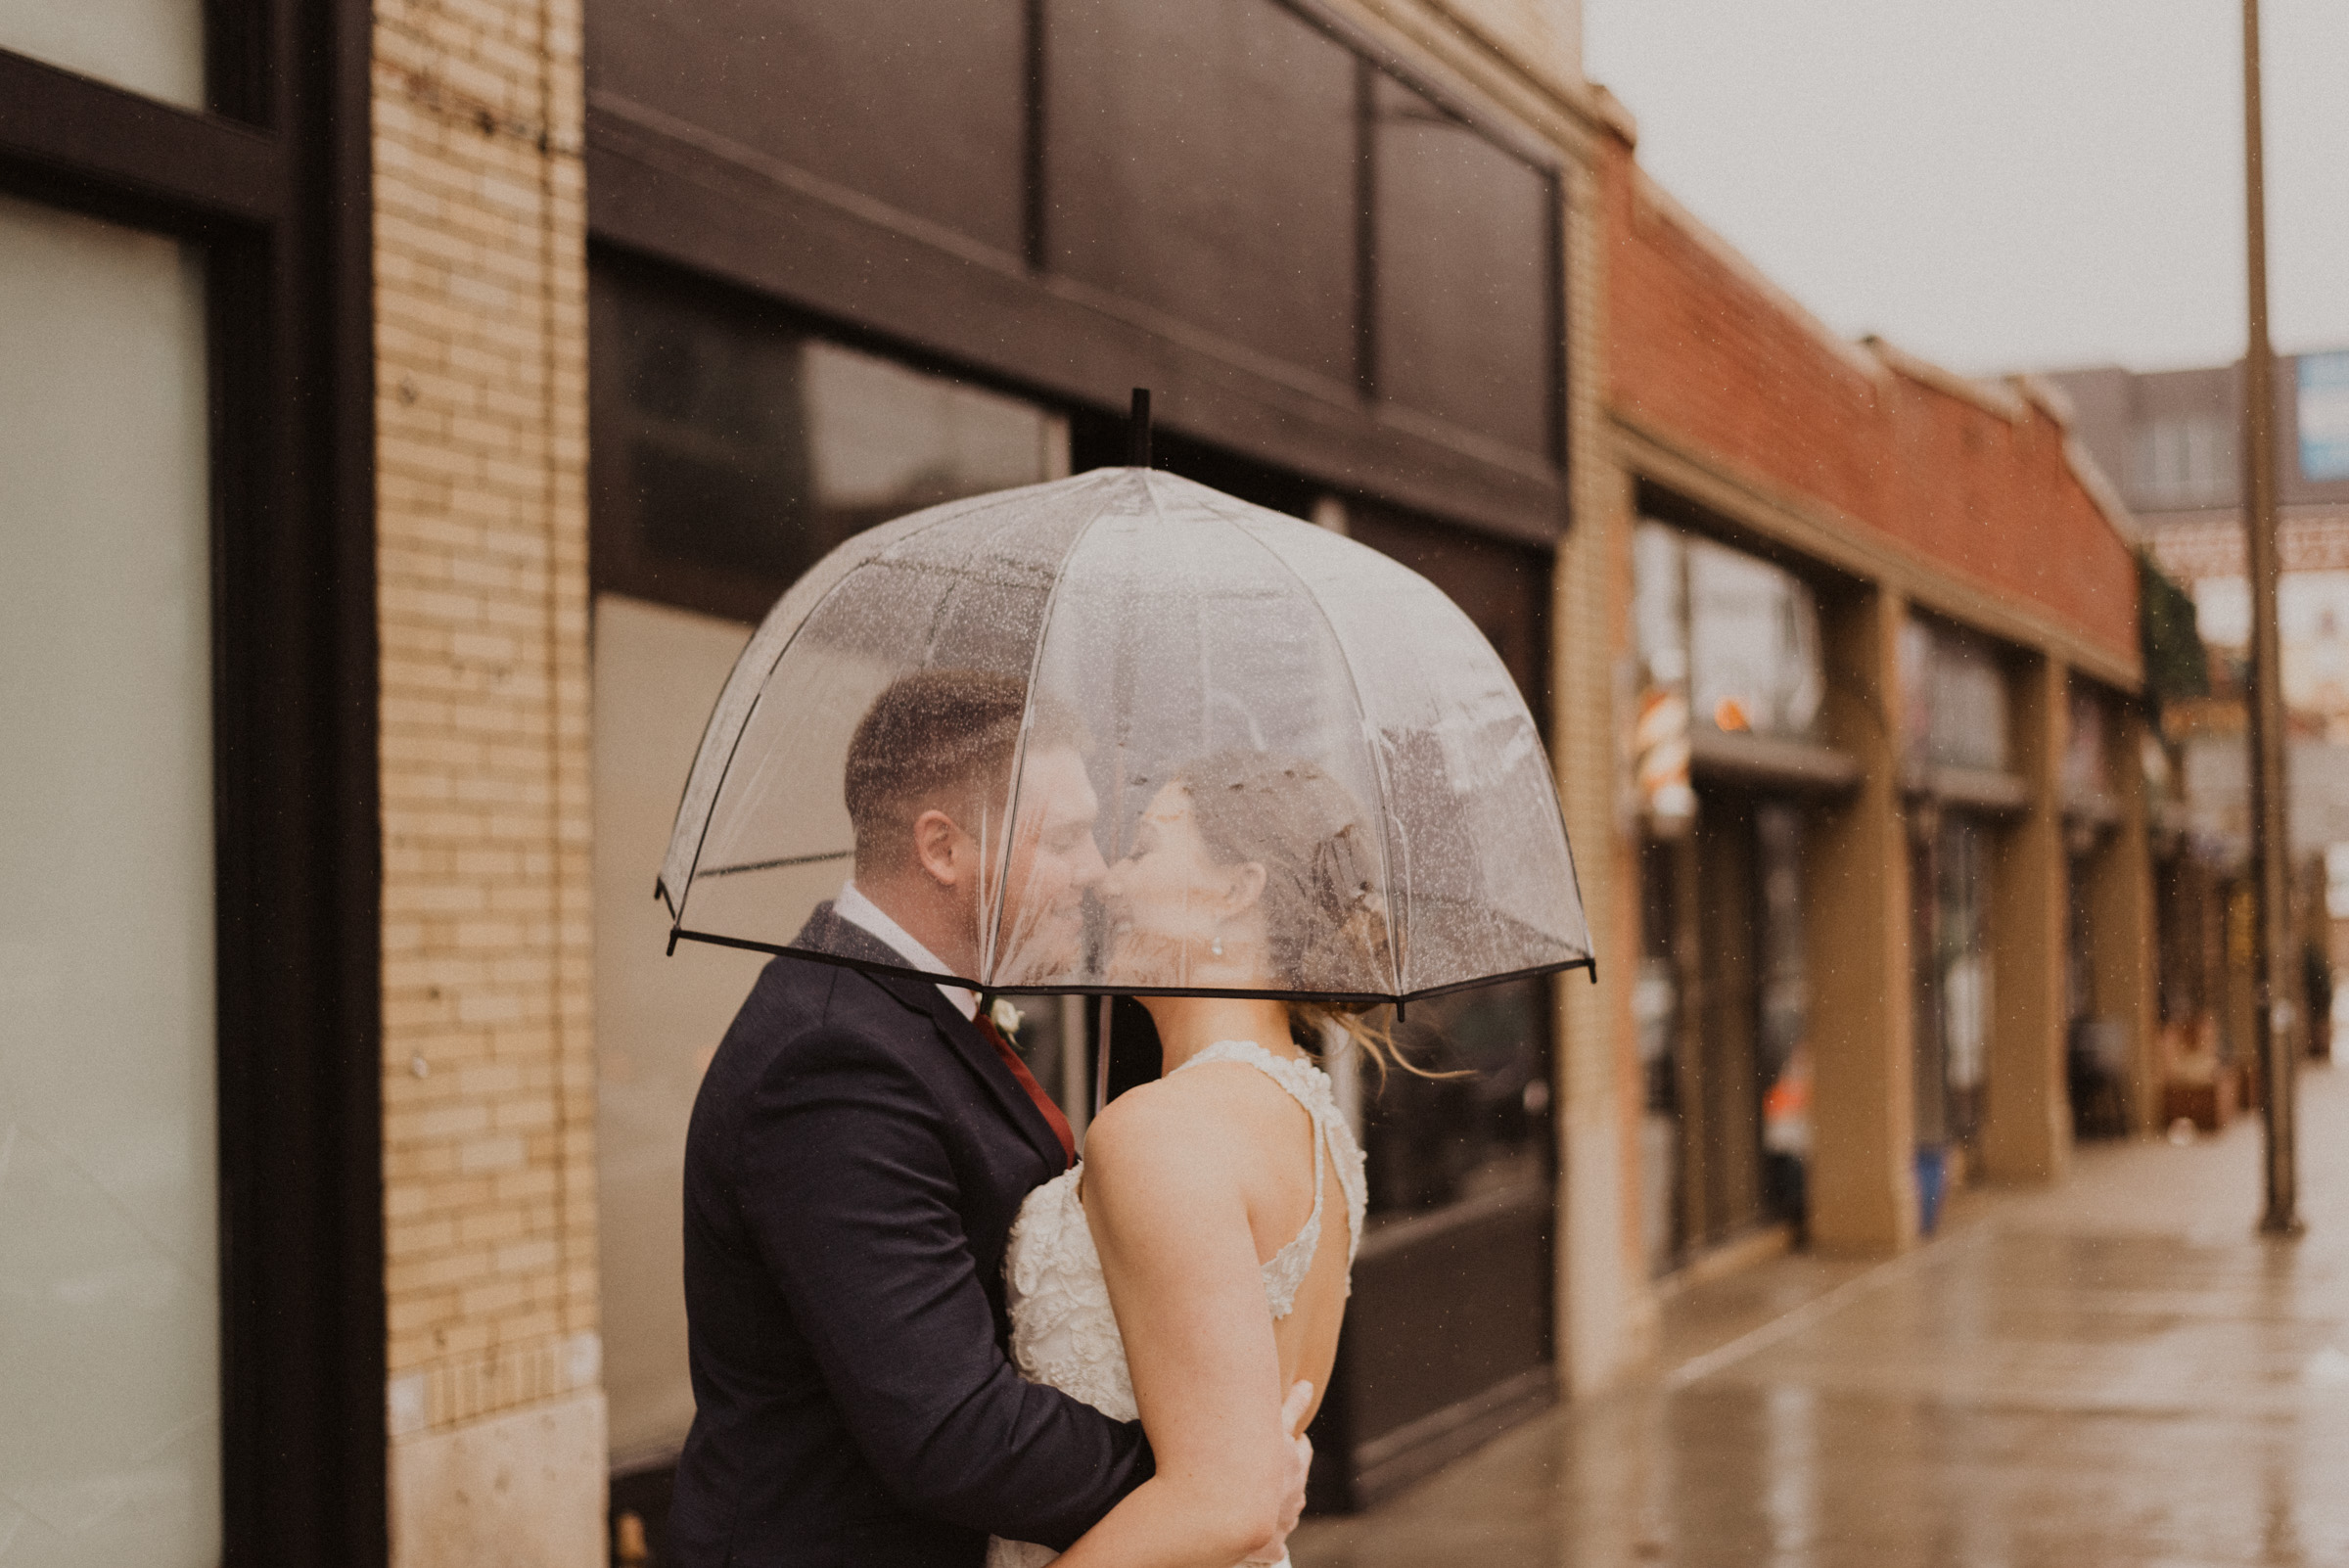 alyssa barletter photography 2016 main kansas city wedding rainy day photographer grace and justin magott-32.jpg